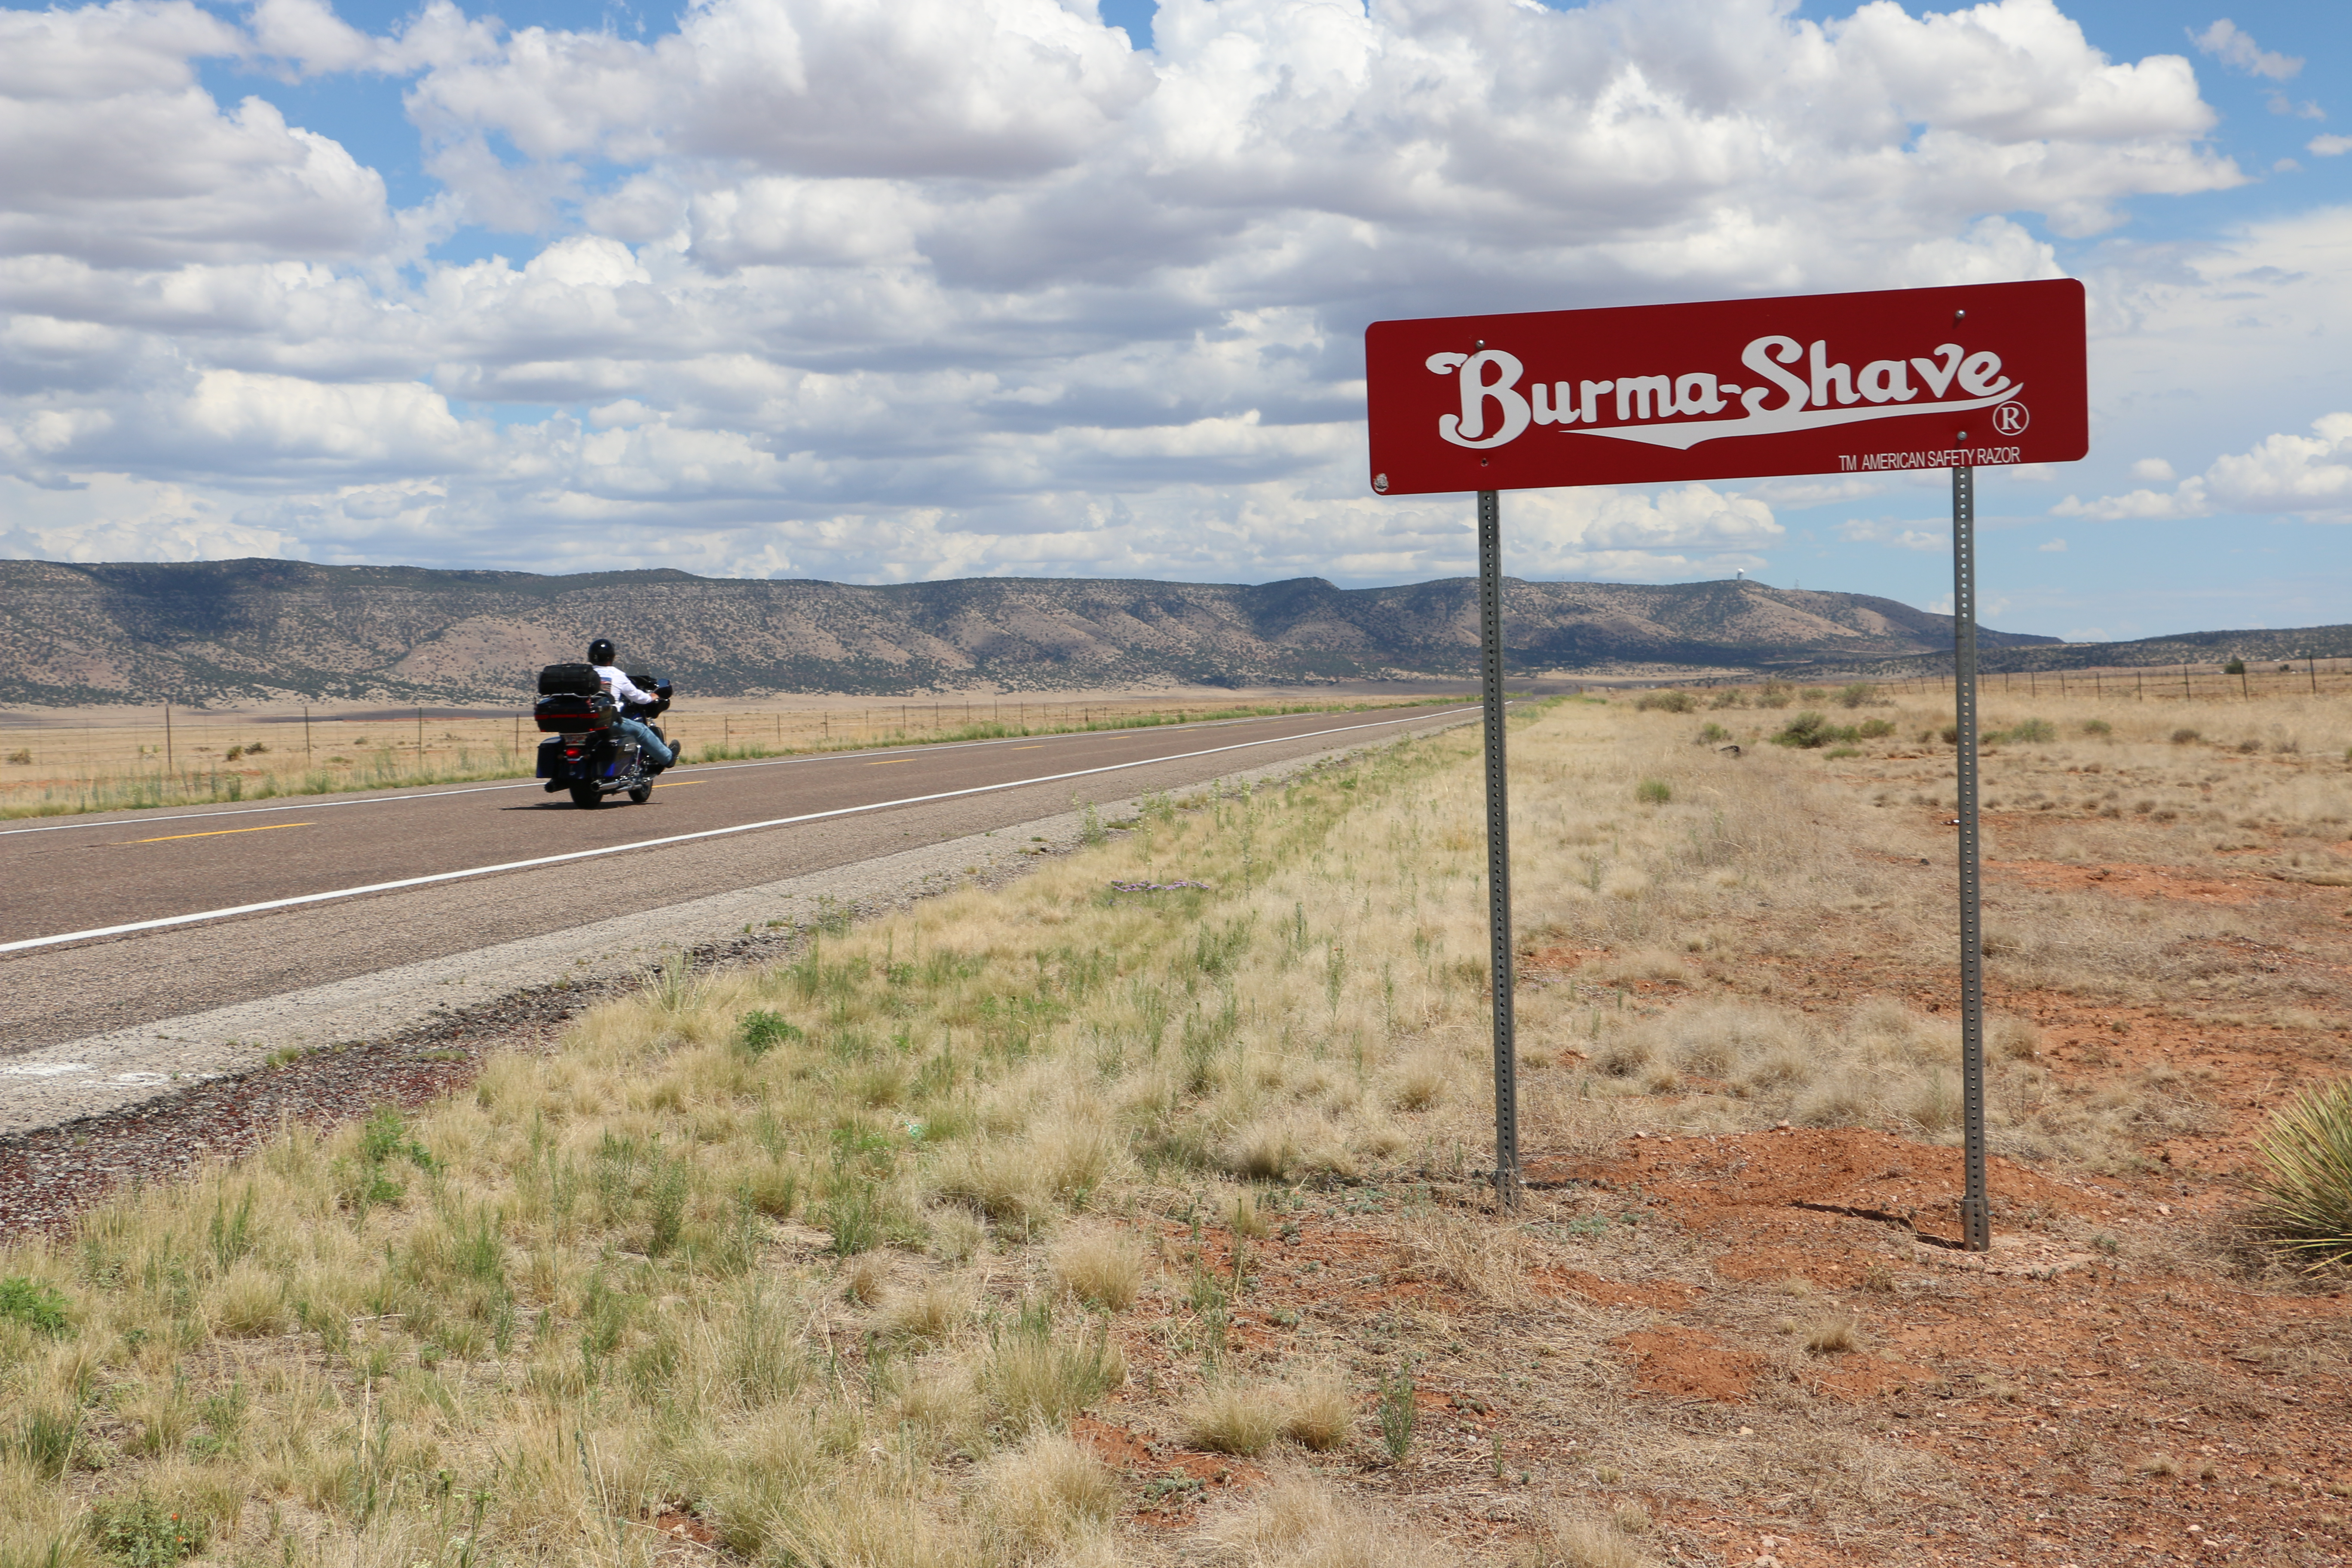 Burma-Shave motorcycle sign